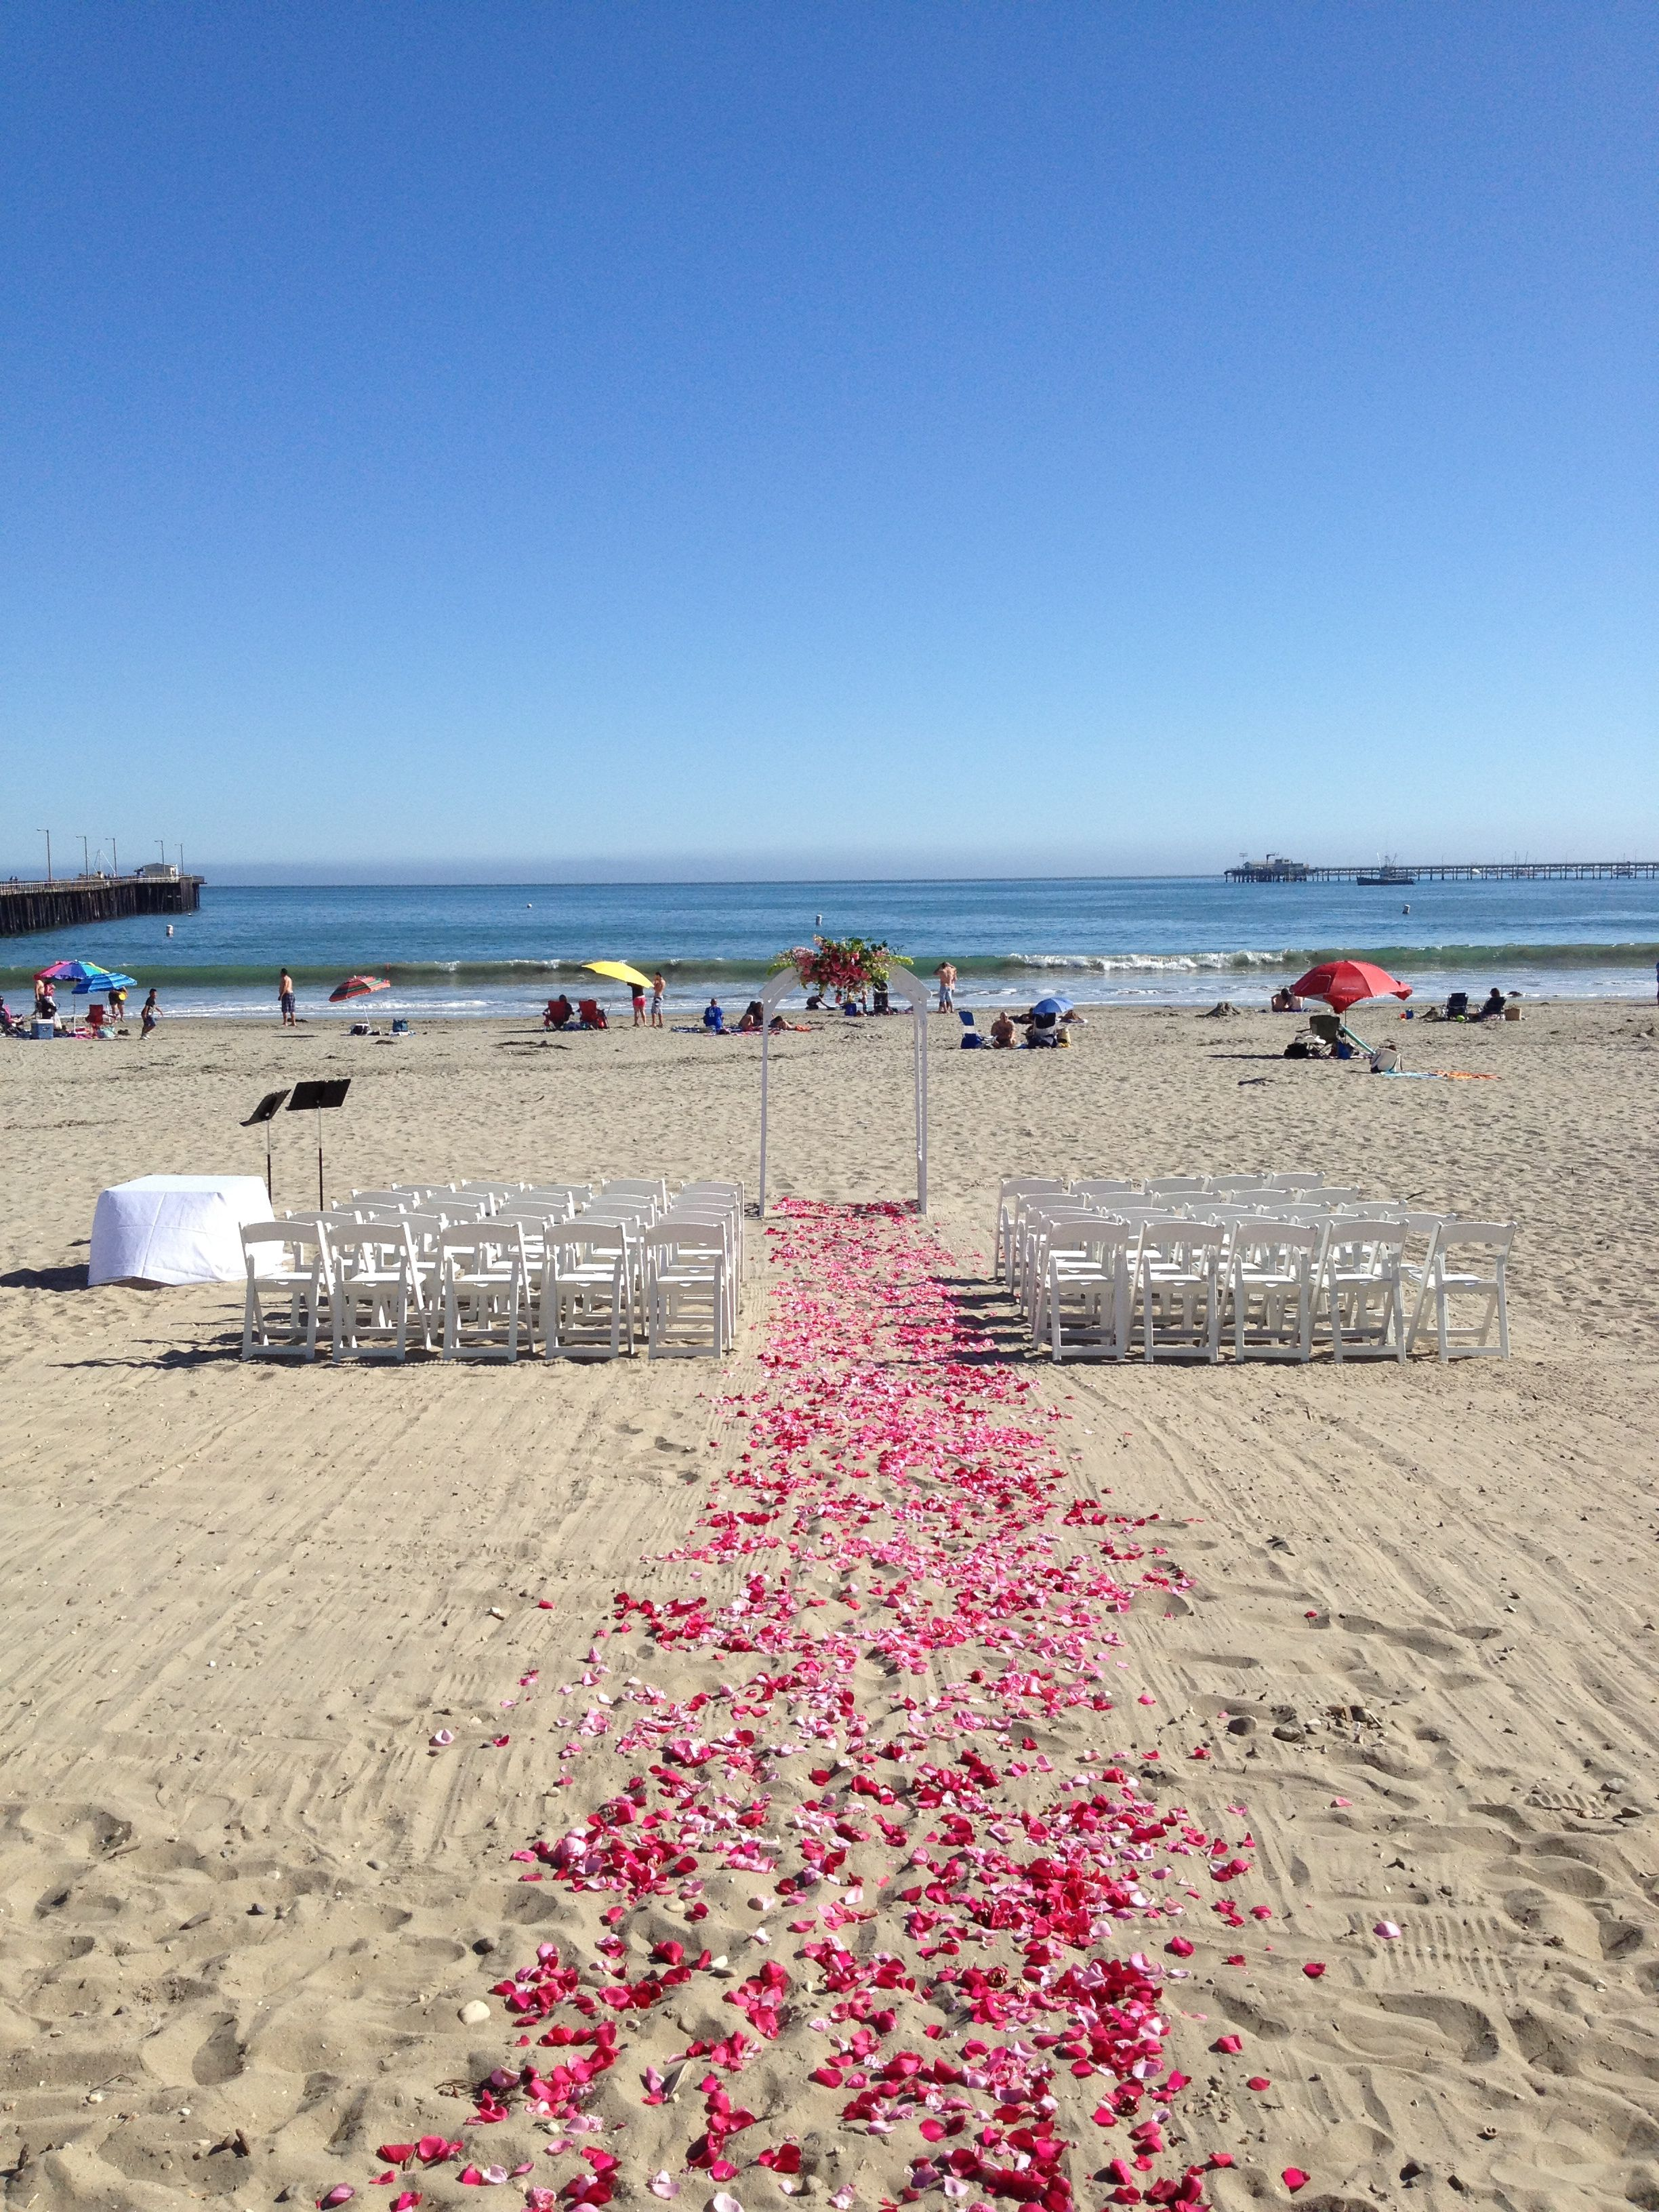 The Old Custom House Weddings Price Out And Compare Wedding Costs For Ceremony Reception Venues In Avila Beach Ca